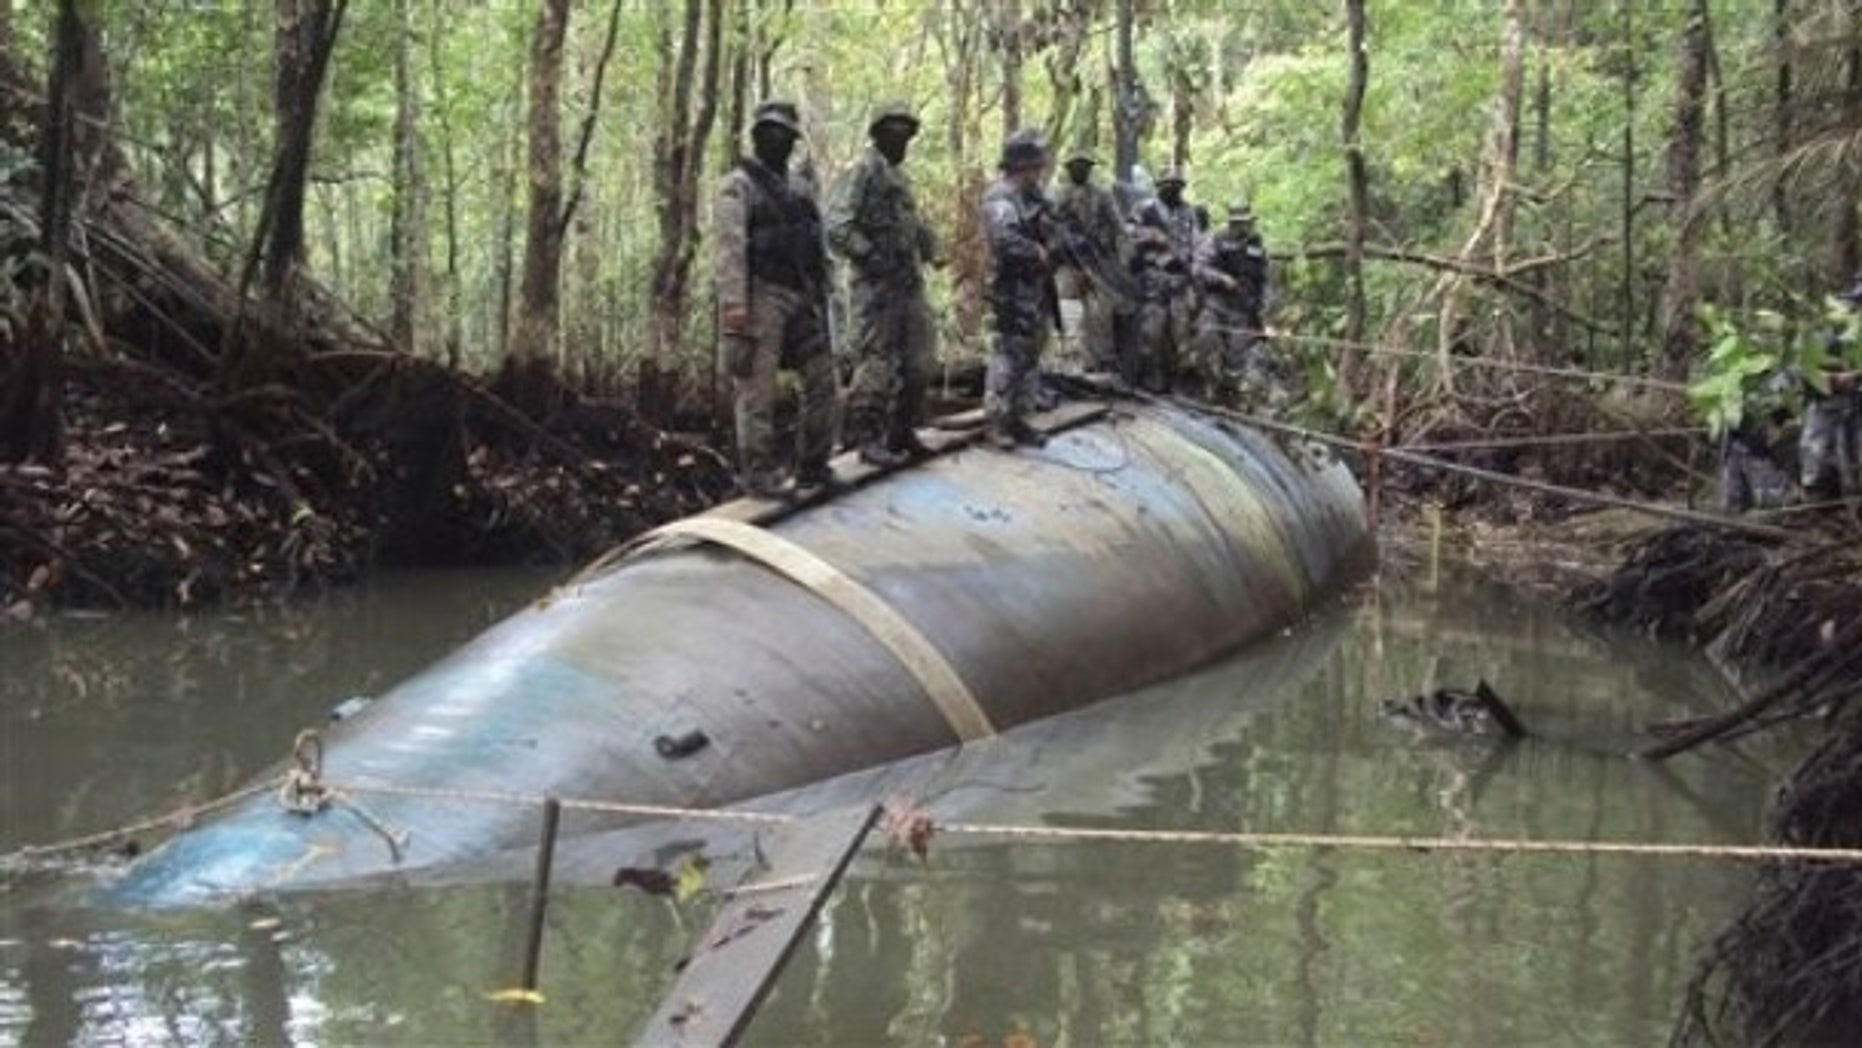 Soldiers stand on a seized submarine in the jungle region of La Loma in Ecuador, Saturday July 3, 2010. DEA officials said that the diesel electric-powered submarine was constructed in a remote jungle and captured near a tributary close to the Ecuador-Colombia border and is capable of transporting tons of cocaine.